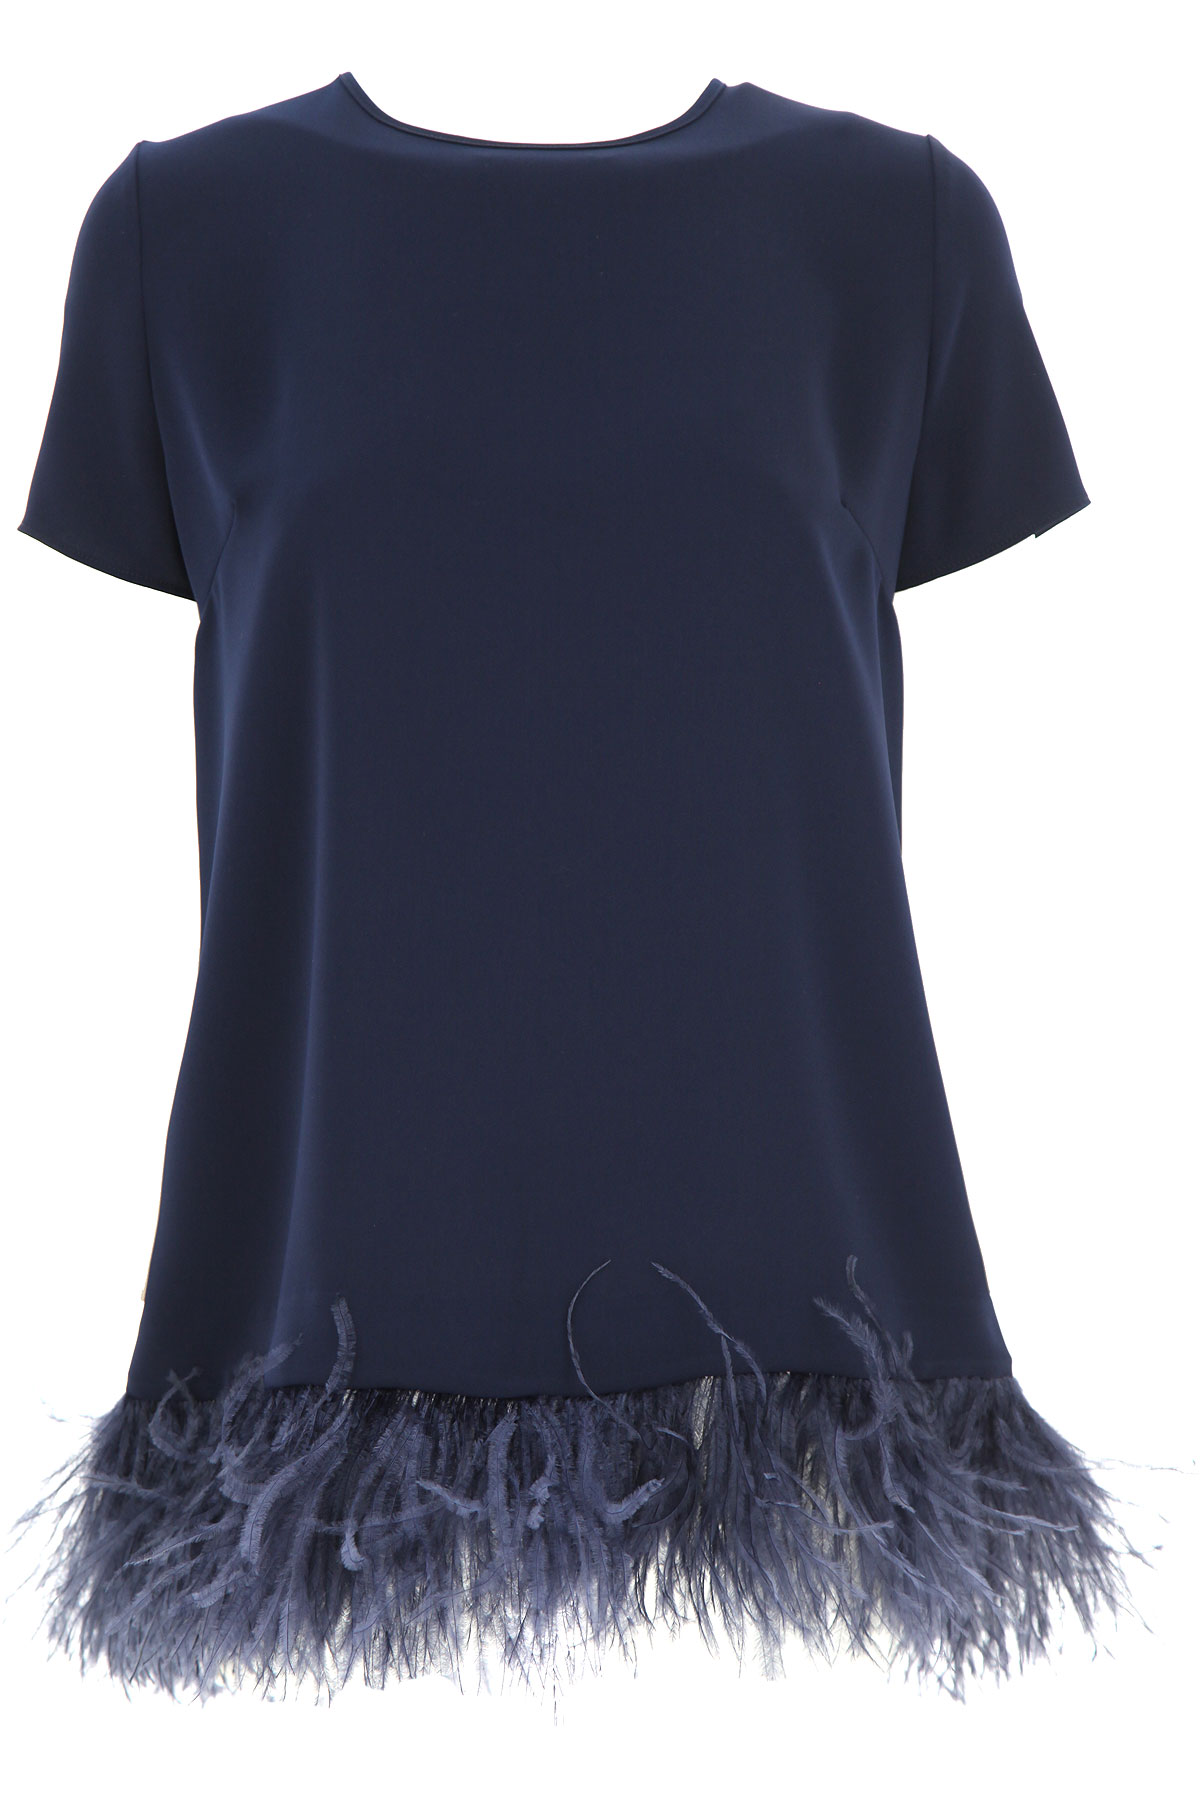 P.A.R.O.S.H. Top for Women On Sale, Midnight Blue, polyester, 2019, 4 6